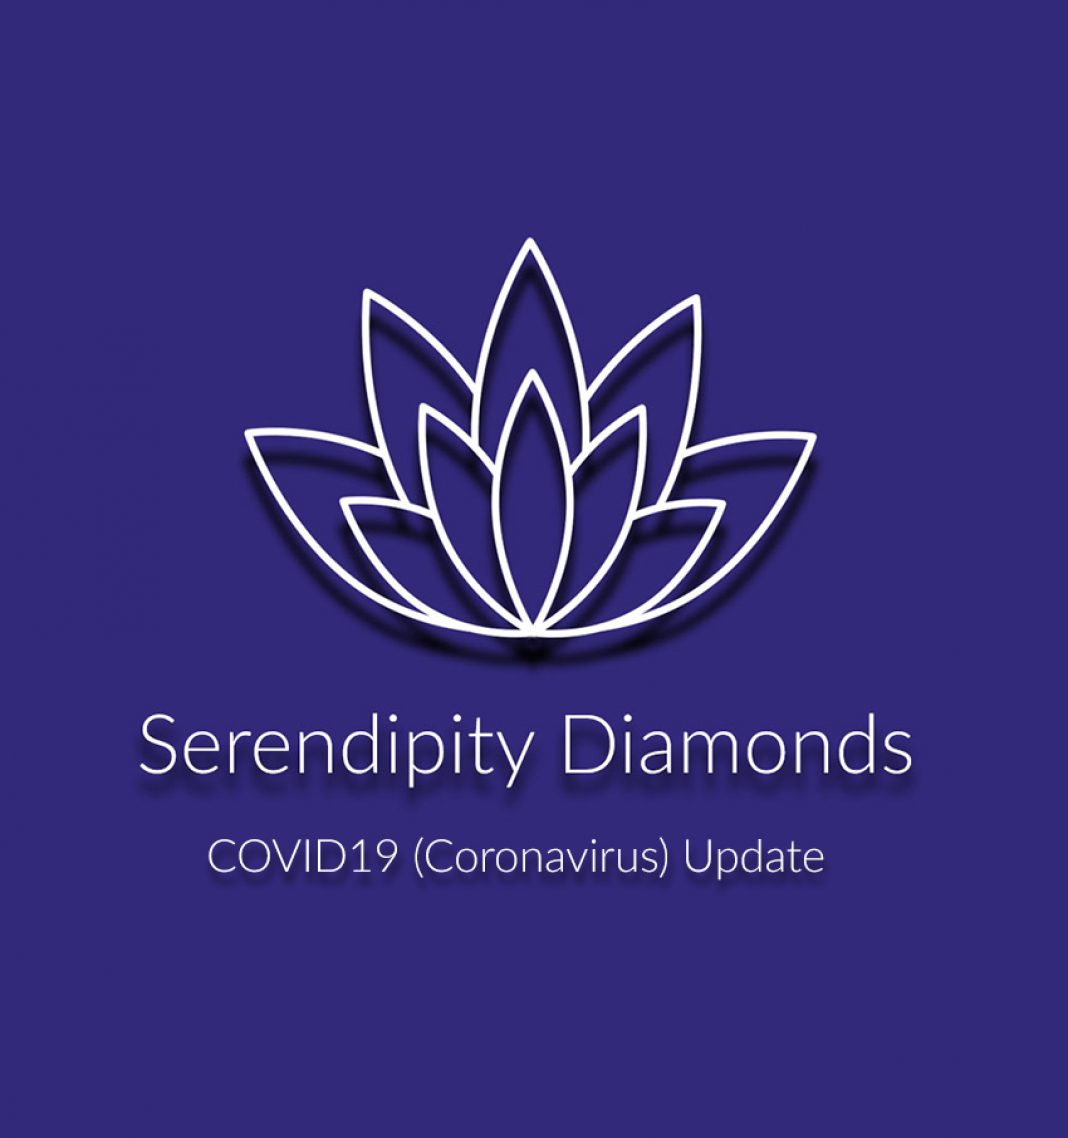 COVID-19 March Update for Serendipity Diamonds